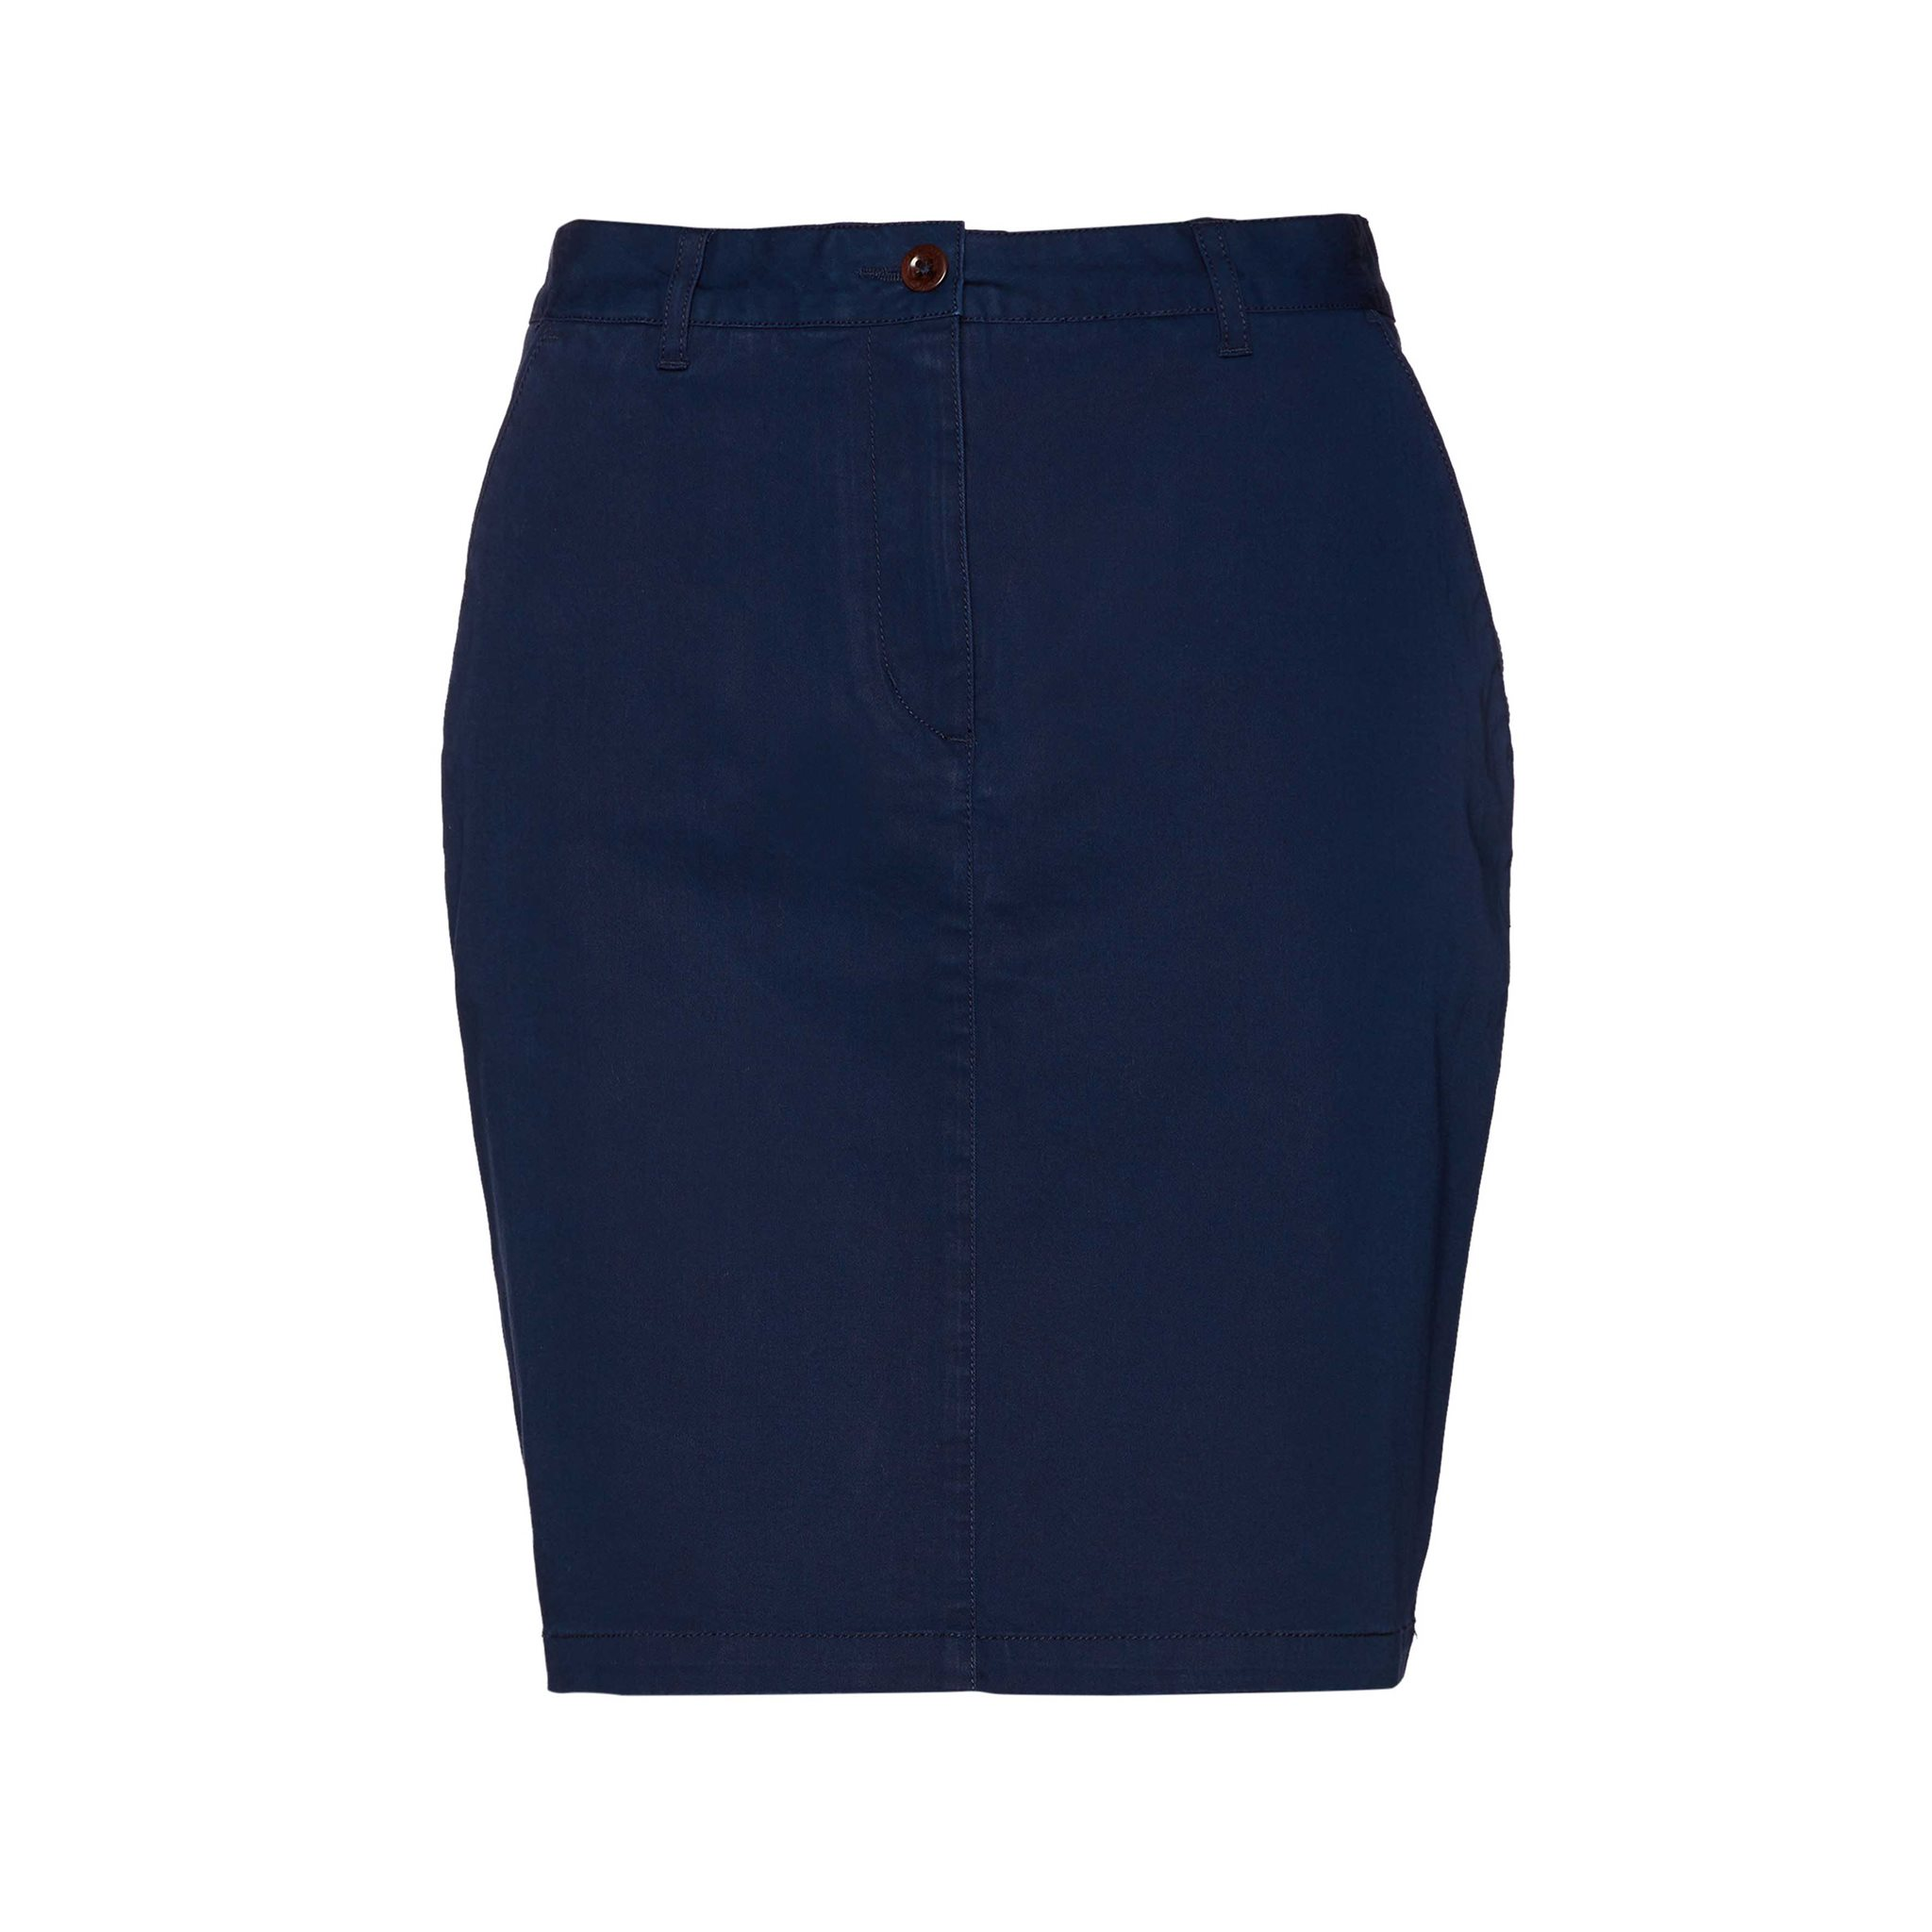 SLIM CLASSIC CHINO SKIRT GANT WOMAN